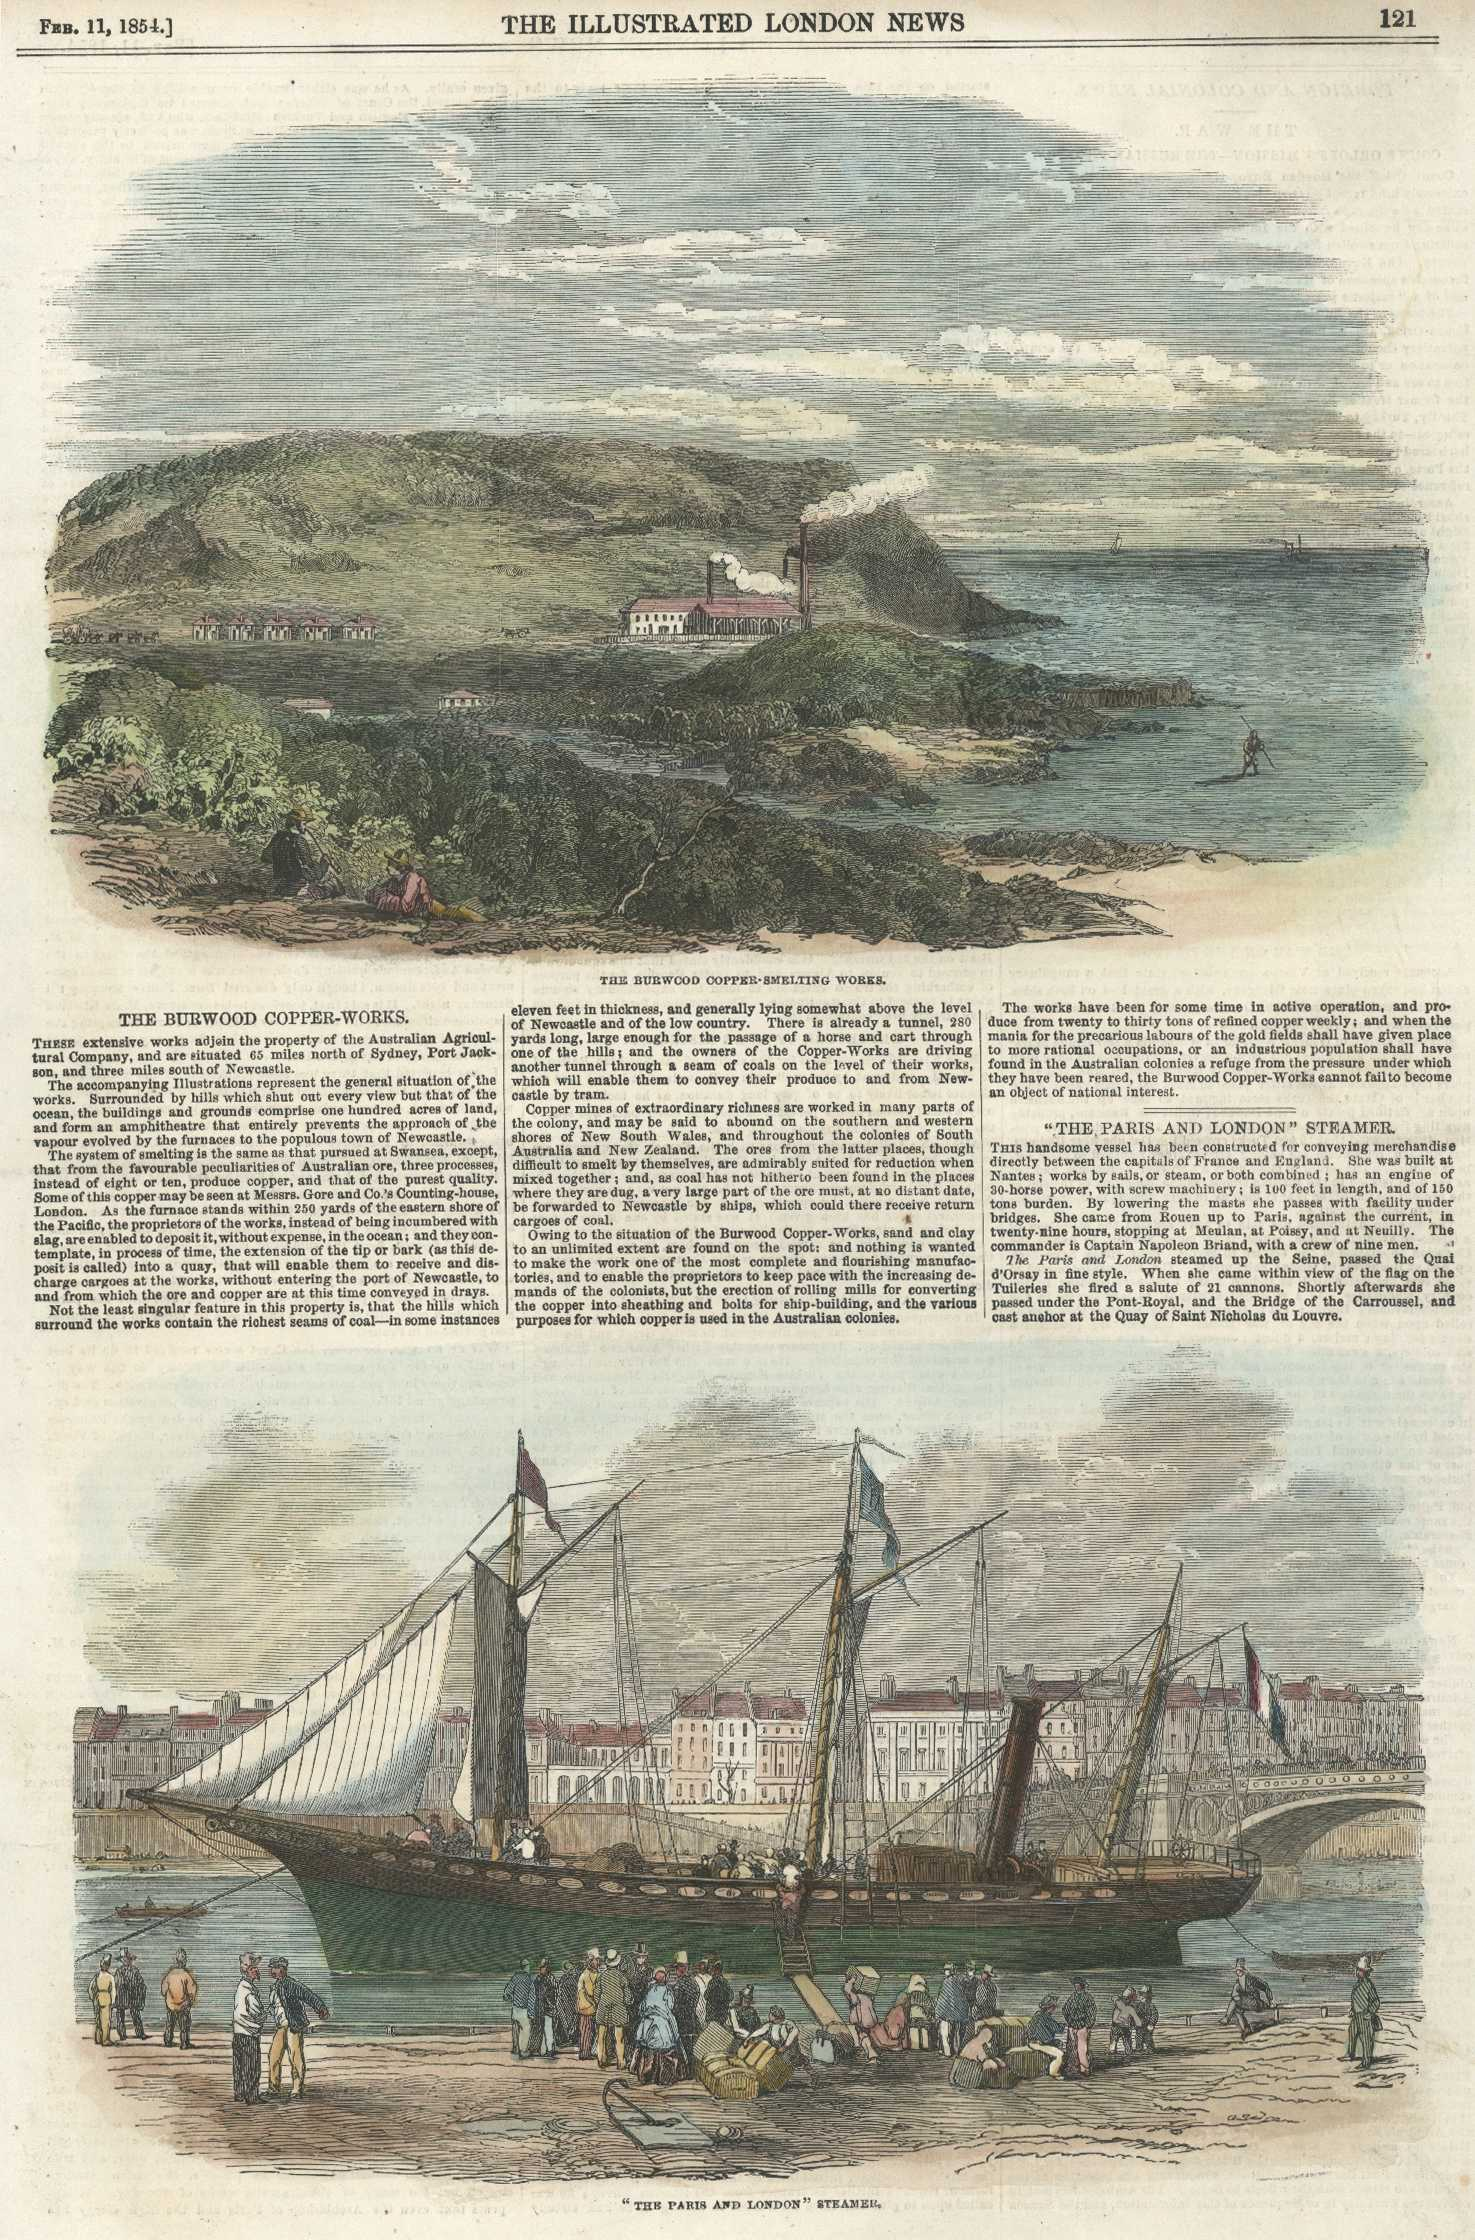 Burwood Copper-smelting Works near Newcastle. Antique engraving c1854